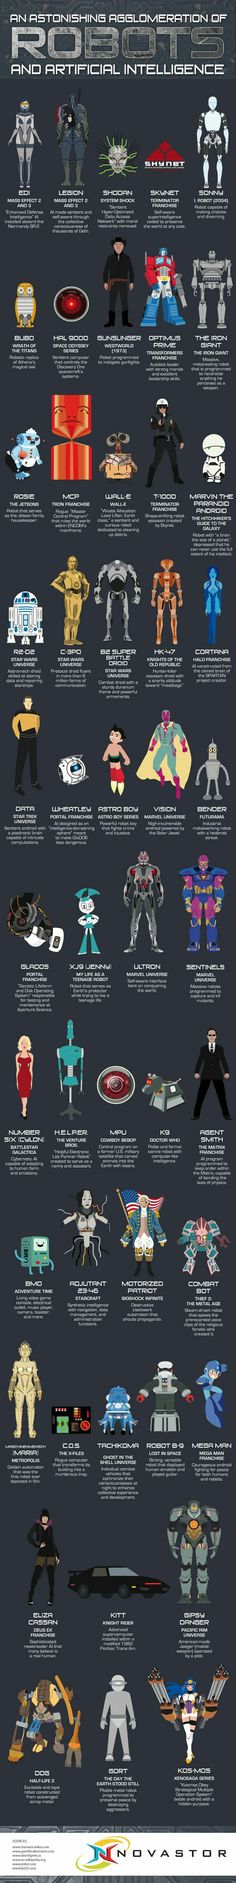 Artificial Intelligence ⯀   Every medium of human expression has been used to explore the nature of artificial intelligence. This infographic shows off dozens of robots, automatons and artificial intelligence entities from a variety of Read more…